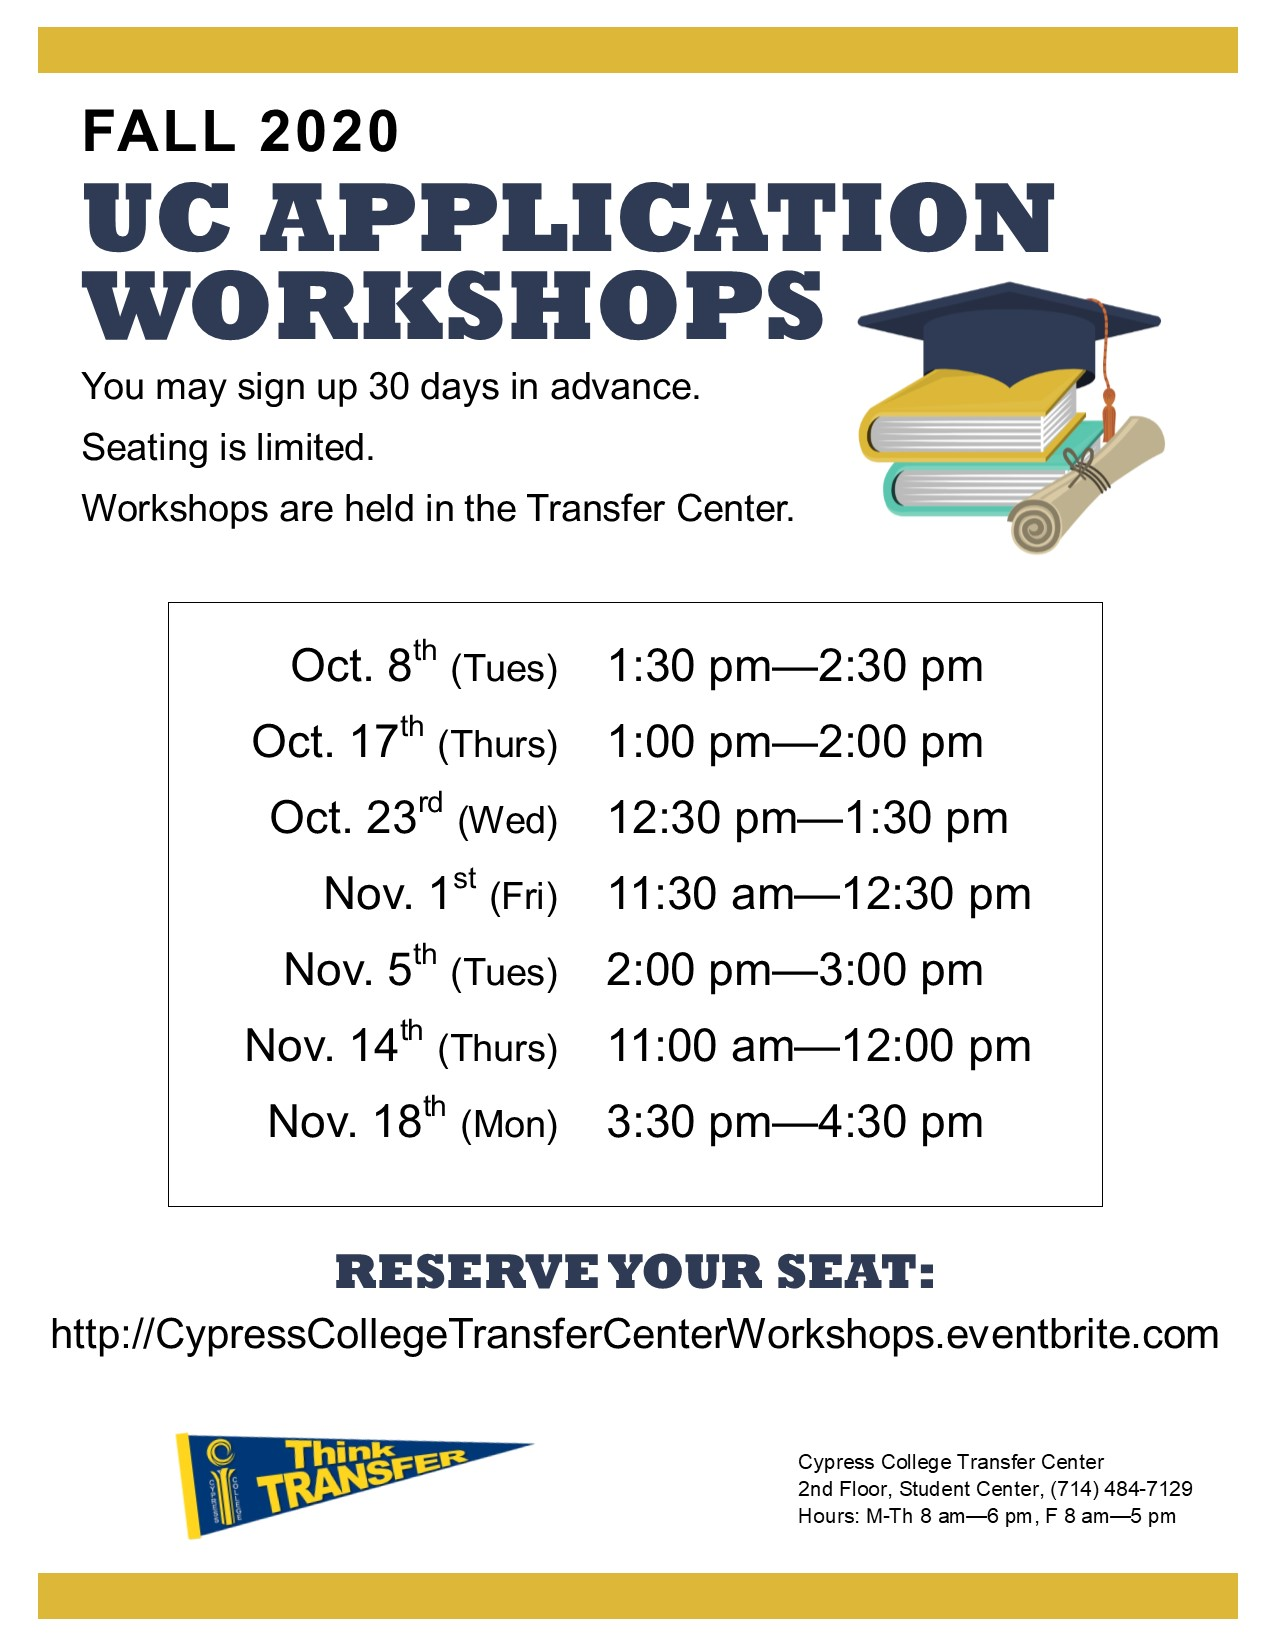 2019 UC application workshops dates and times